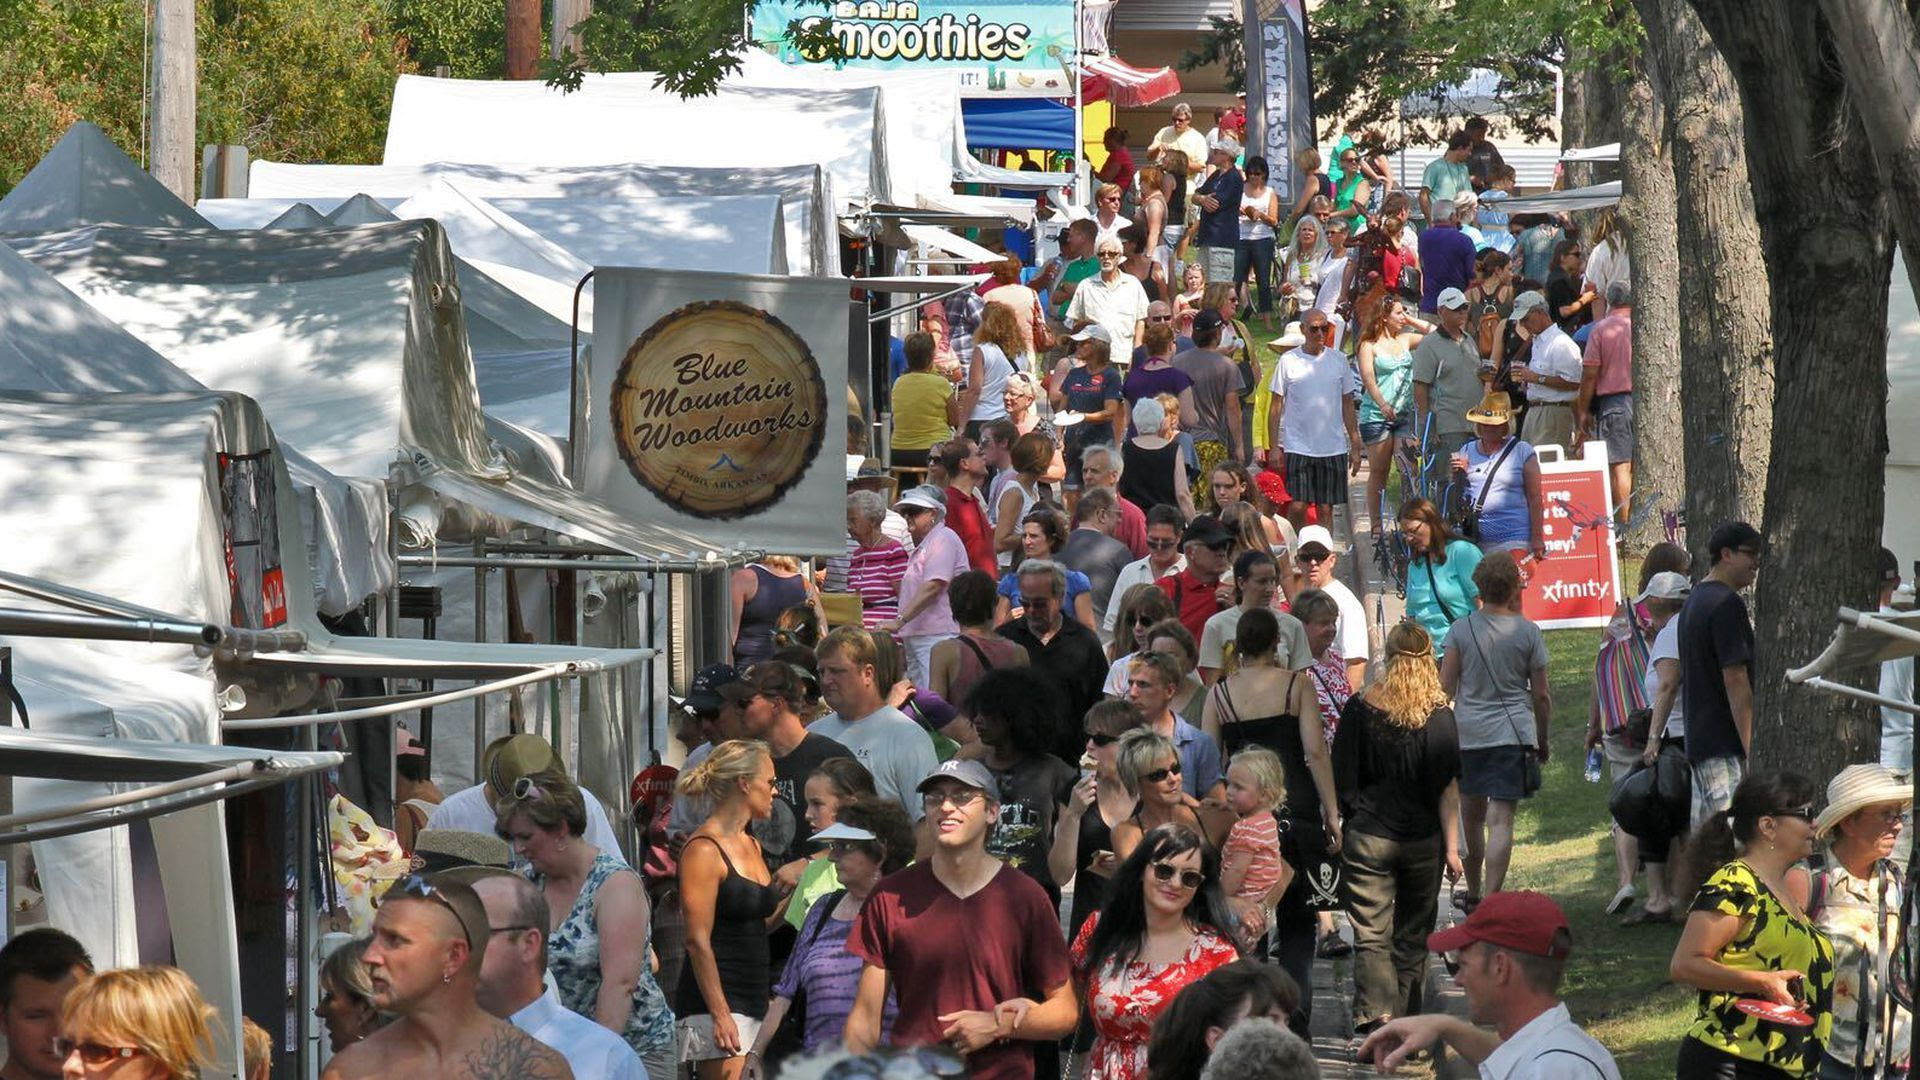 Large crowds gather by tents at Minneapolis' Uptown Art Fair